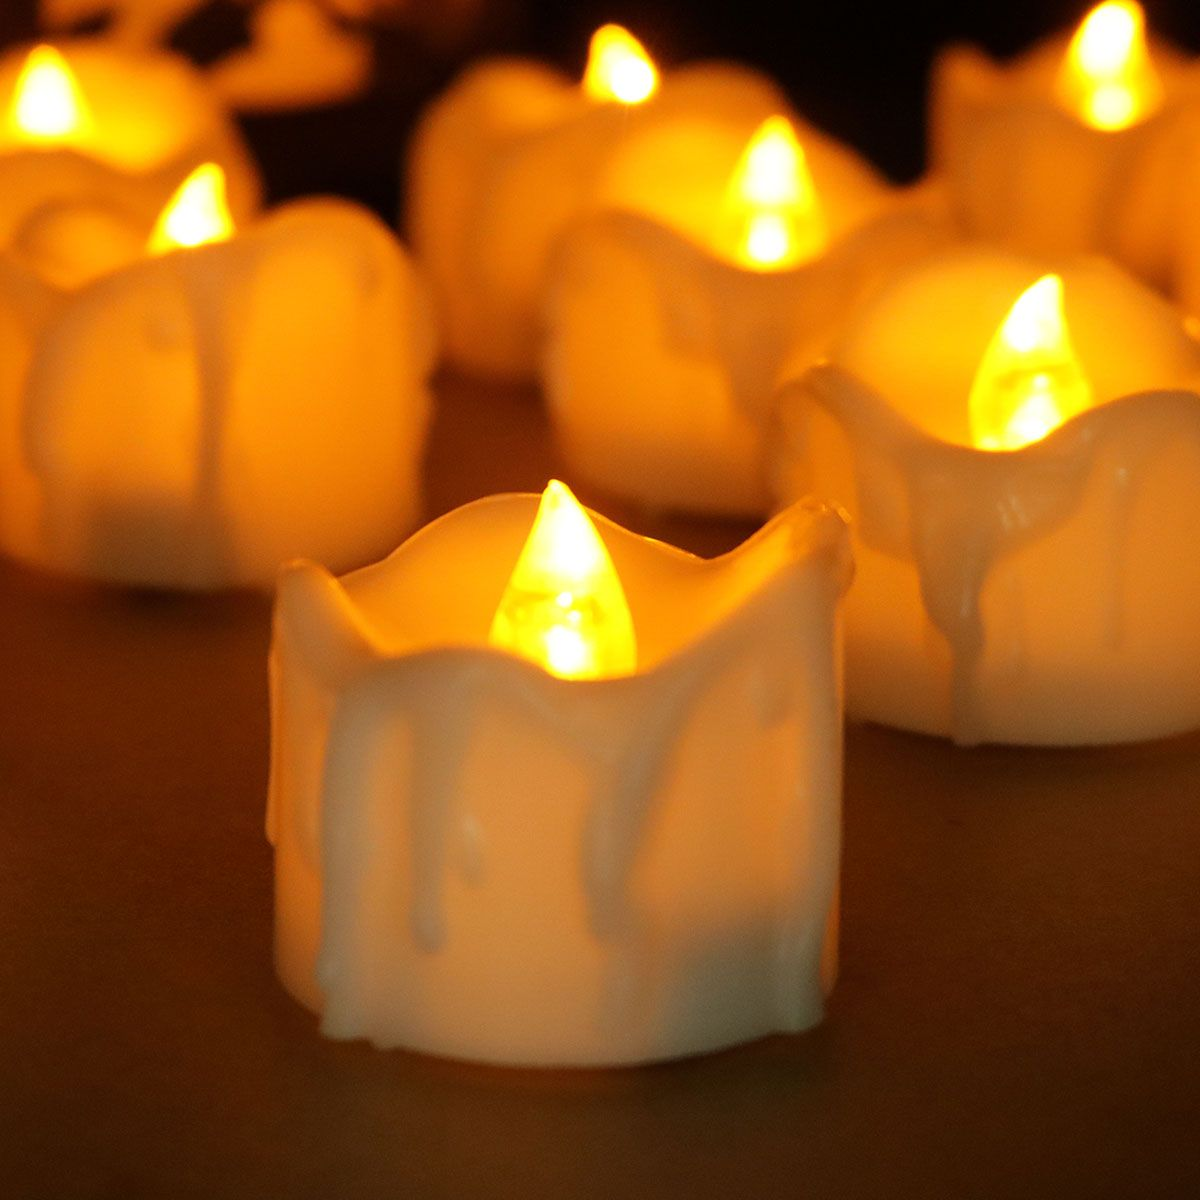 Solar Power Tealight Advocator Solar Powered 6 Pcs Warm White Flickering Flameless Candle Lights Waterproof Romantic Fake Tealight Candle for Wedding Holiday,Window,Home,Garden,Outdoor Decoration